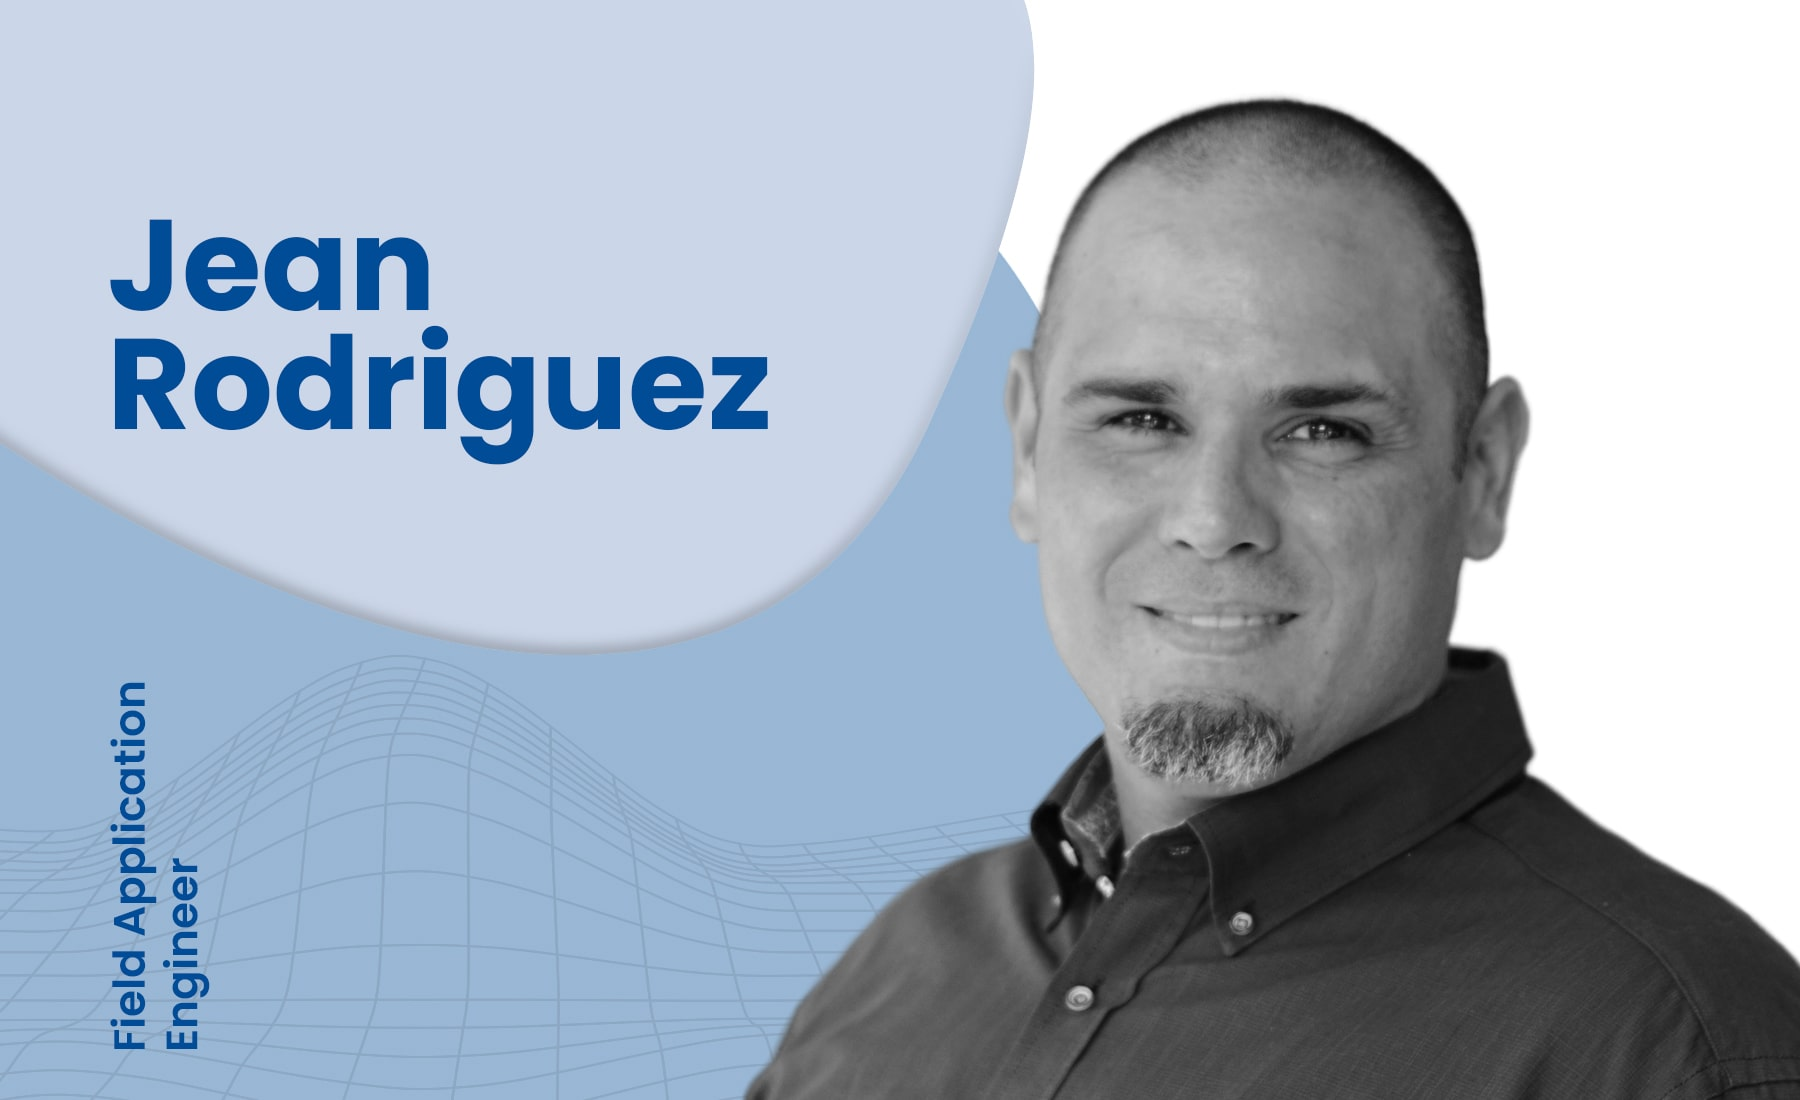 Interview with Field Application Engineer, Jean Rodriguez